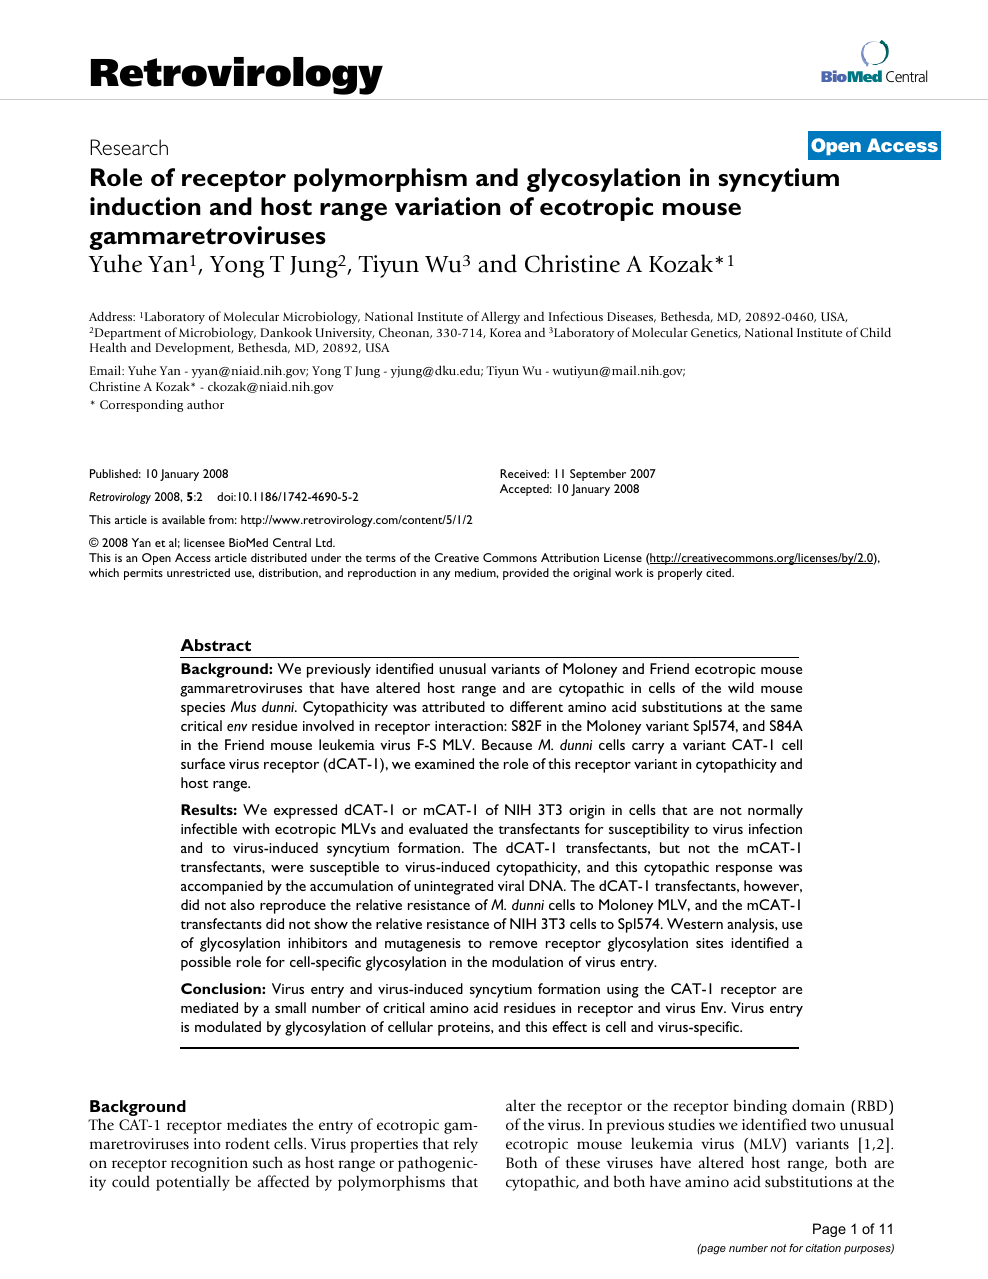 Role of receptor polymorphism and glycosylation in syncytium